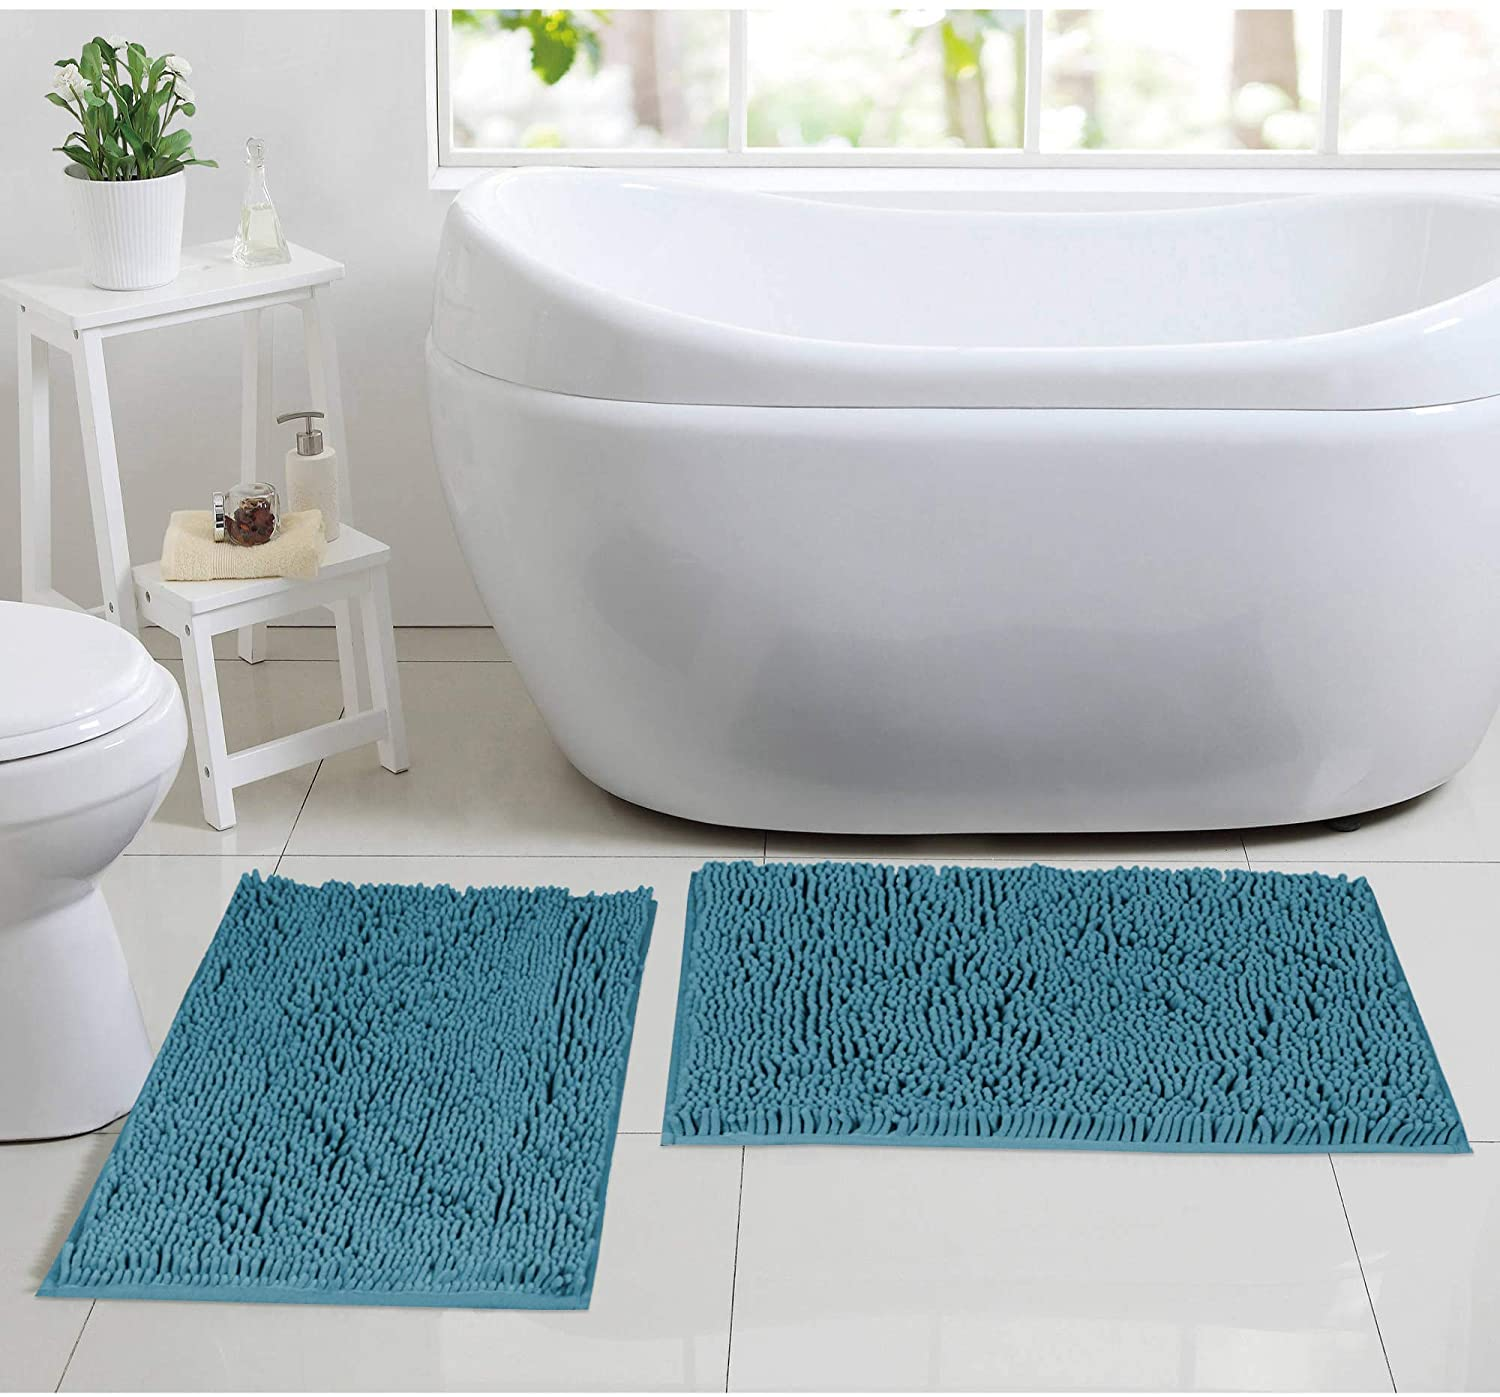 Chenille Microfiber Material Bath Rugs Chenille Floor Mat Ultra Soft Washable Bathroom Dry Fast Water Absorbent Bedroom Area Rugs Indoor Mats for Entryway, (Dark Teal 17